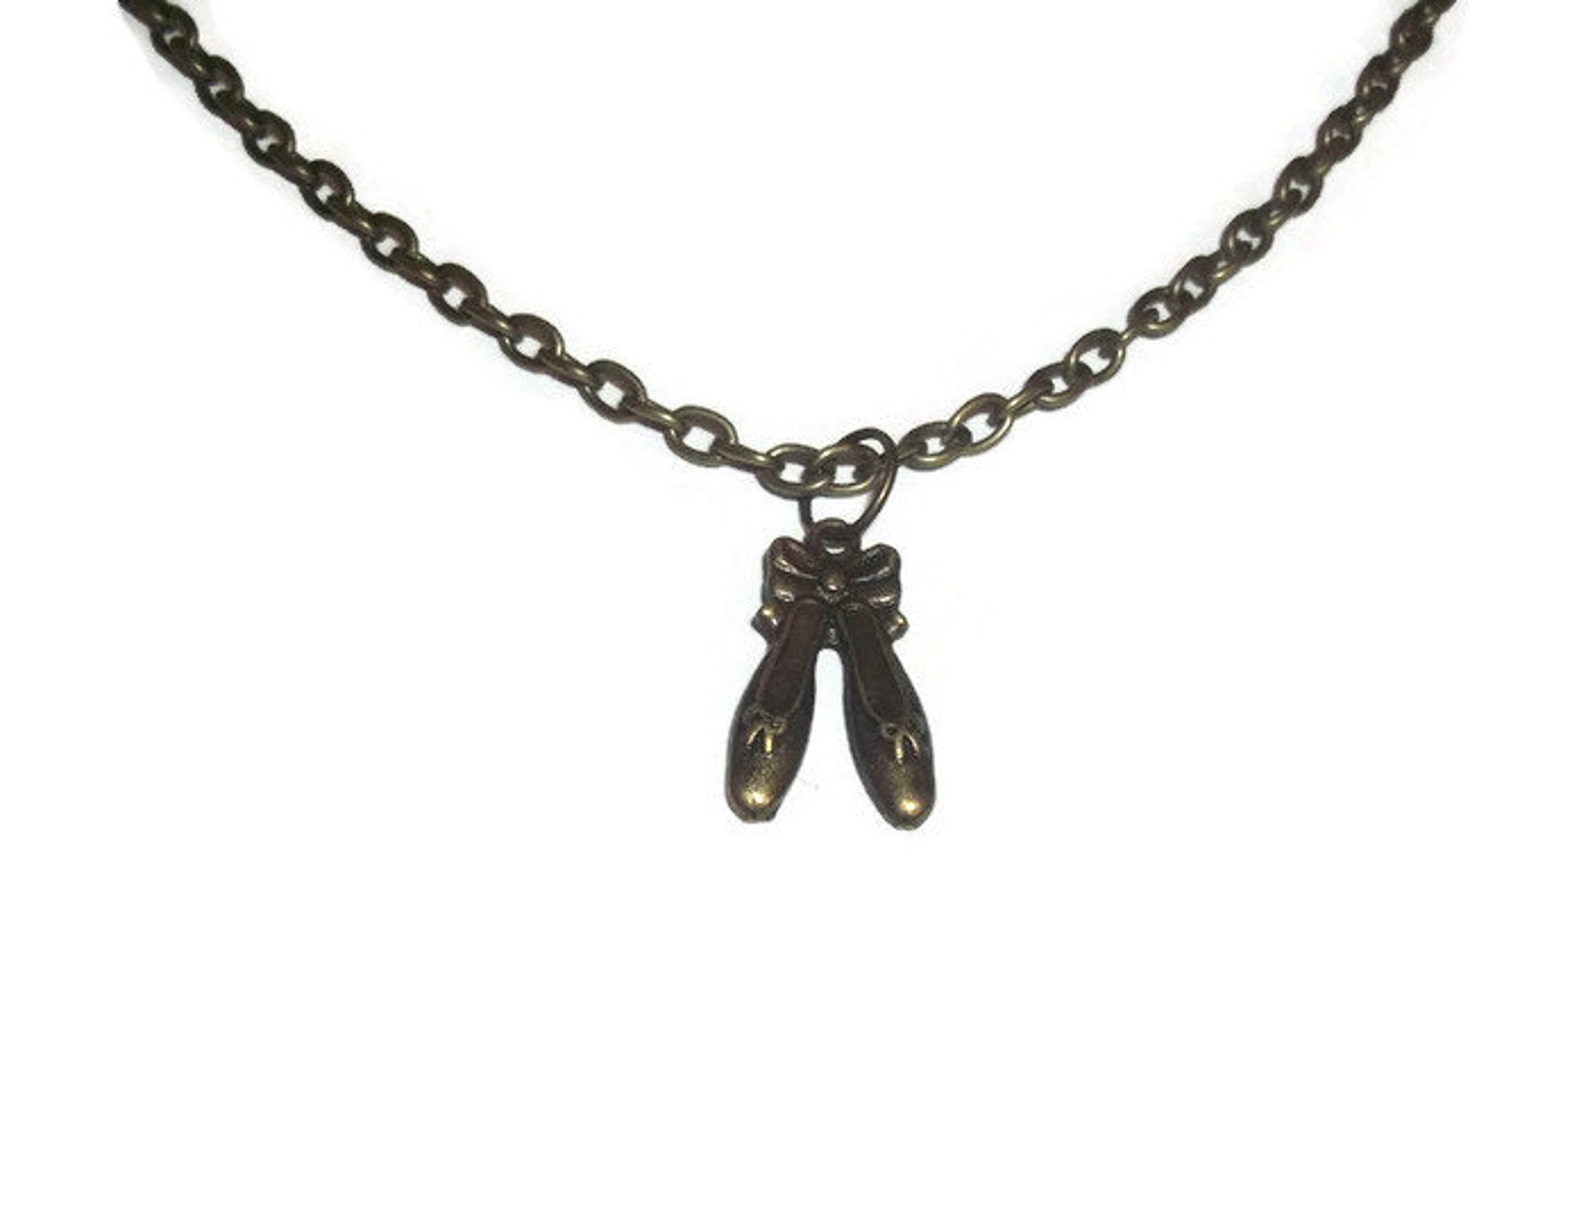 ballet shoes necklace, cute bronze charm pendant, girly dancing